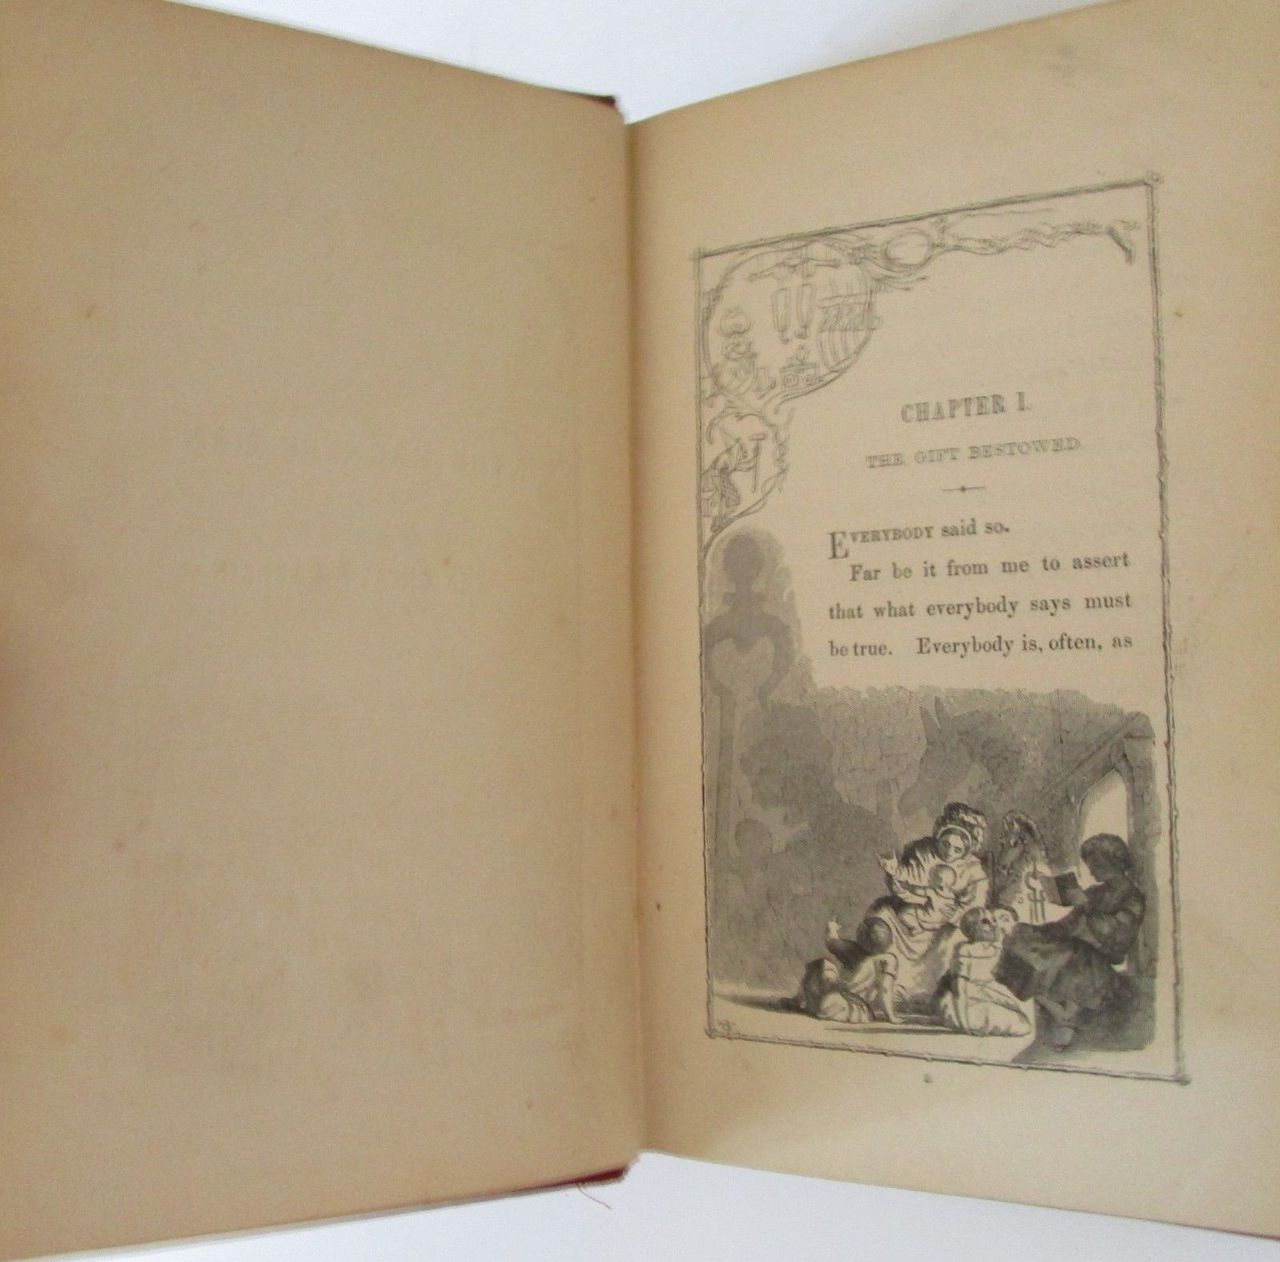 THE HAUNTED MAN & THE GHOST'S BARGAIN, by Charles Dickens - 1848 [1st Ed, Engravings]